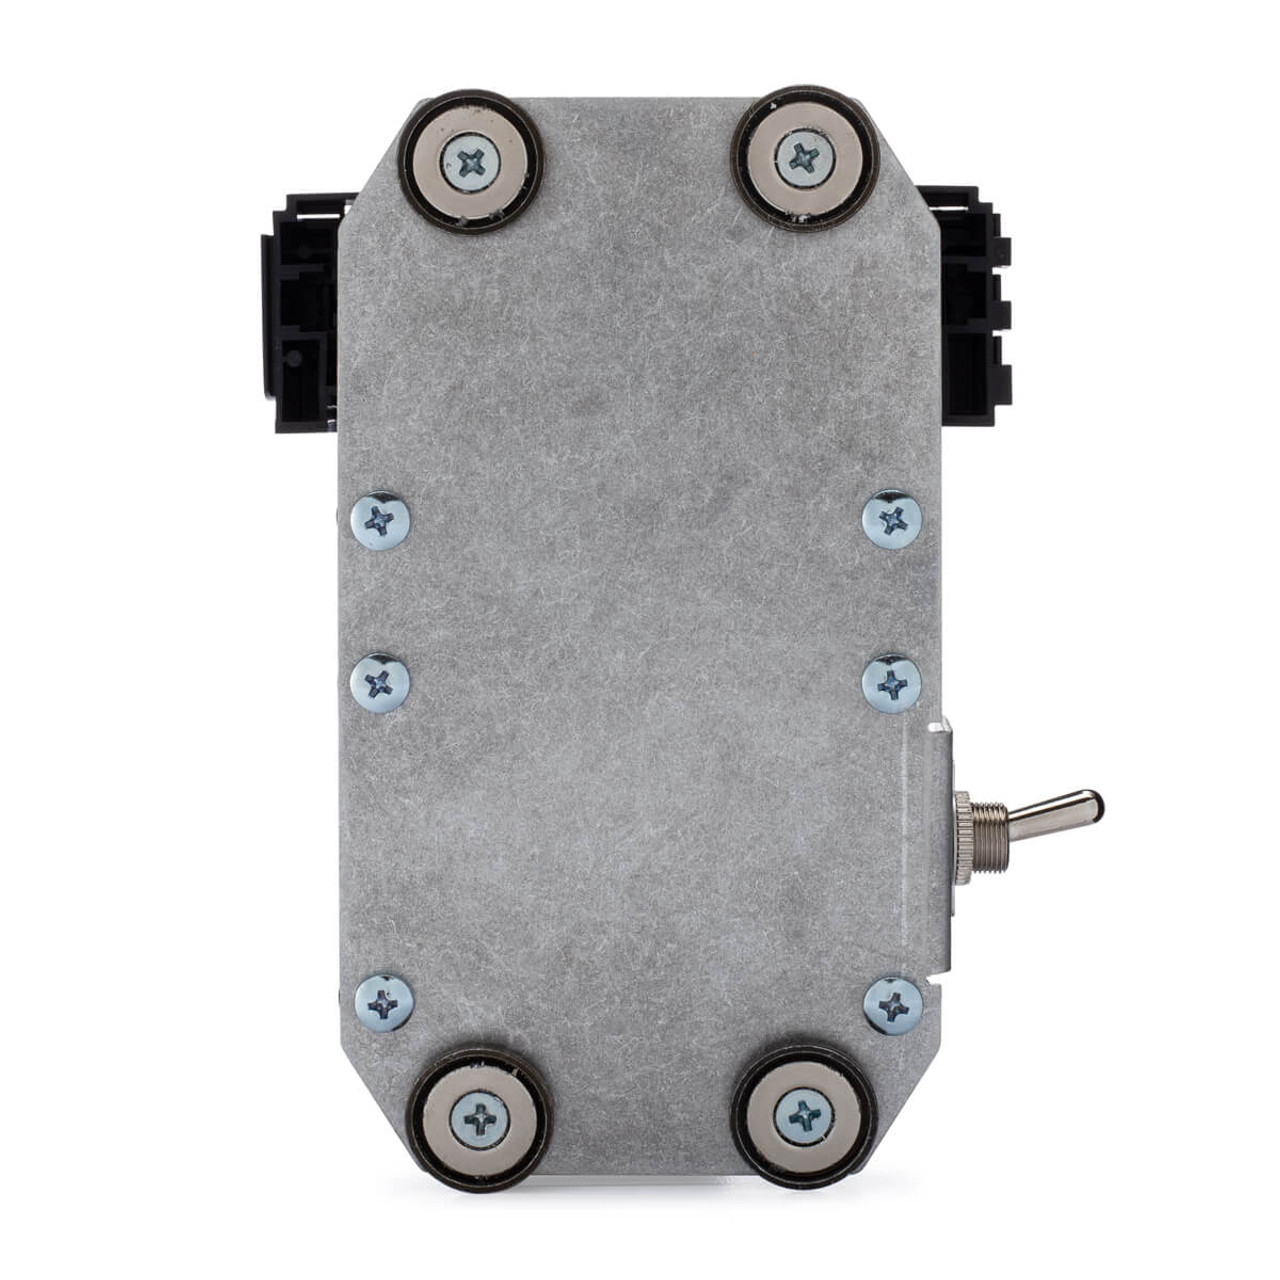 hight resolution of fuse panel firewall magnetic mount kwikwire com electrify your ride wire harness magnets